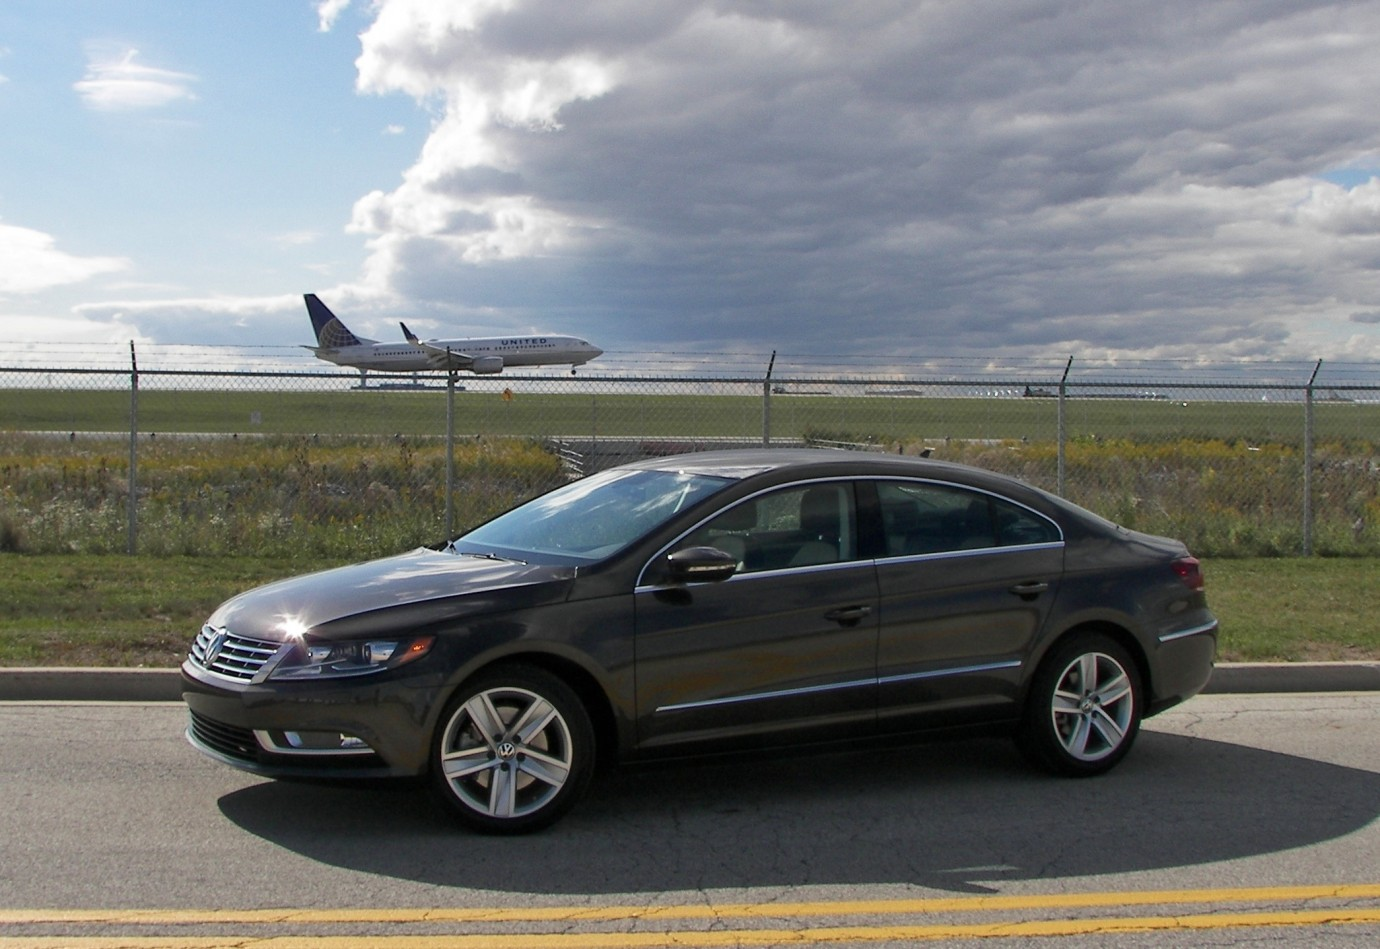 The 2013 Volkswagen CC Sport, airplane watching, from a safe distance.